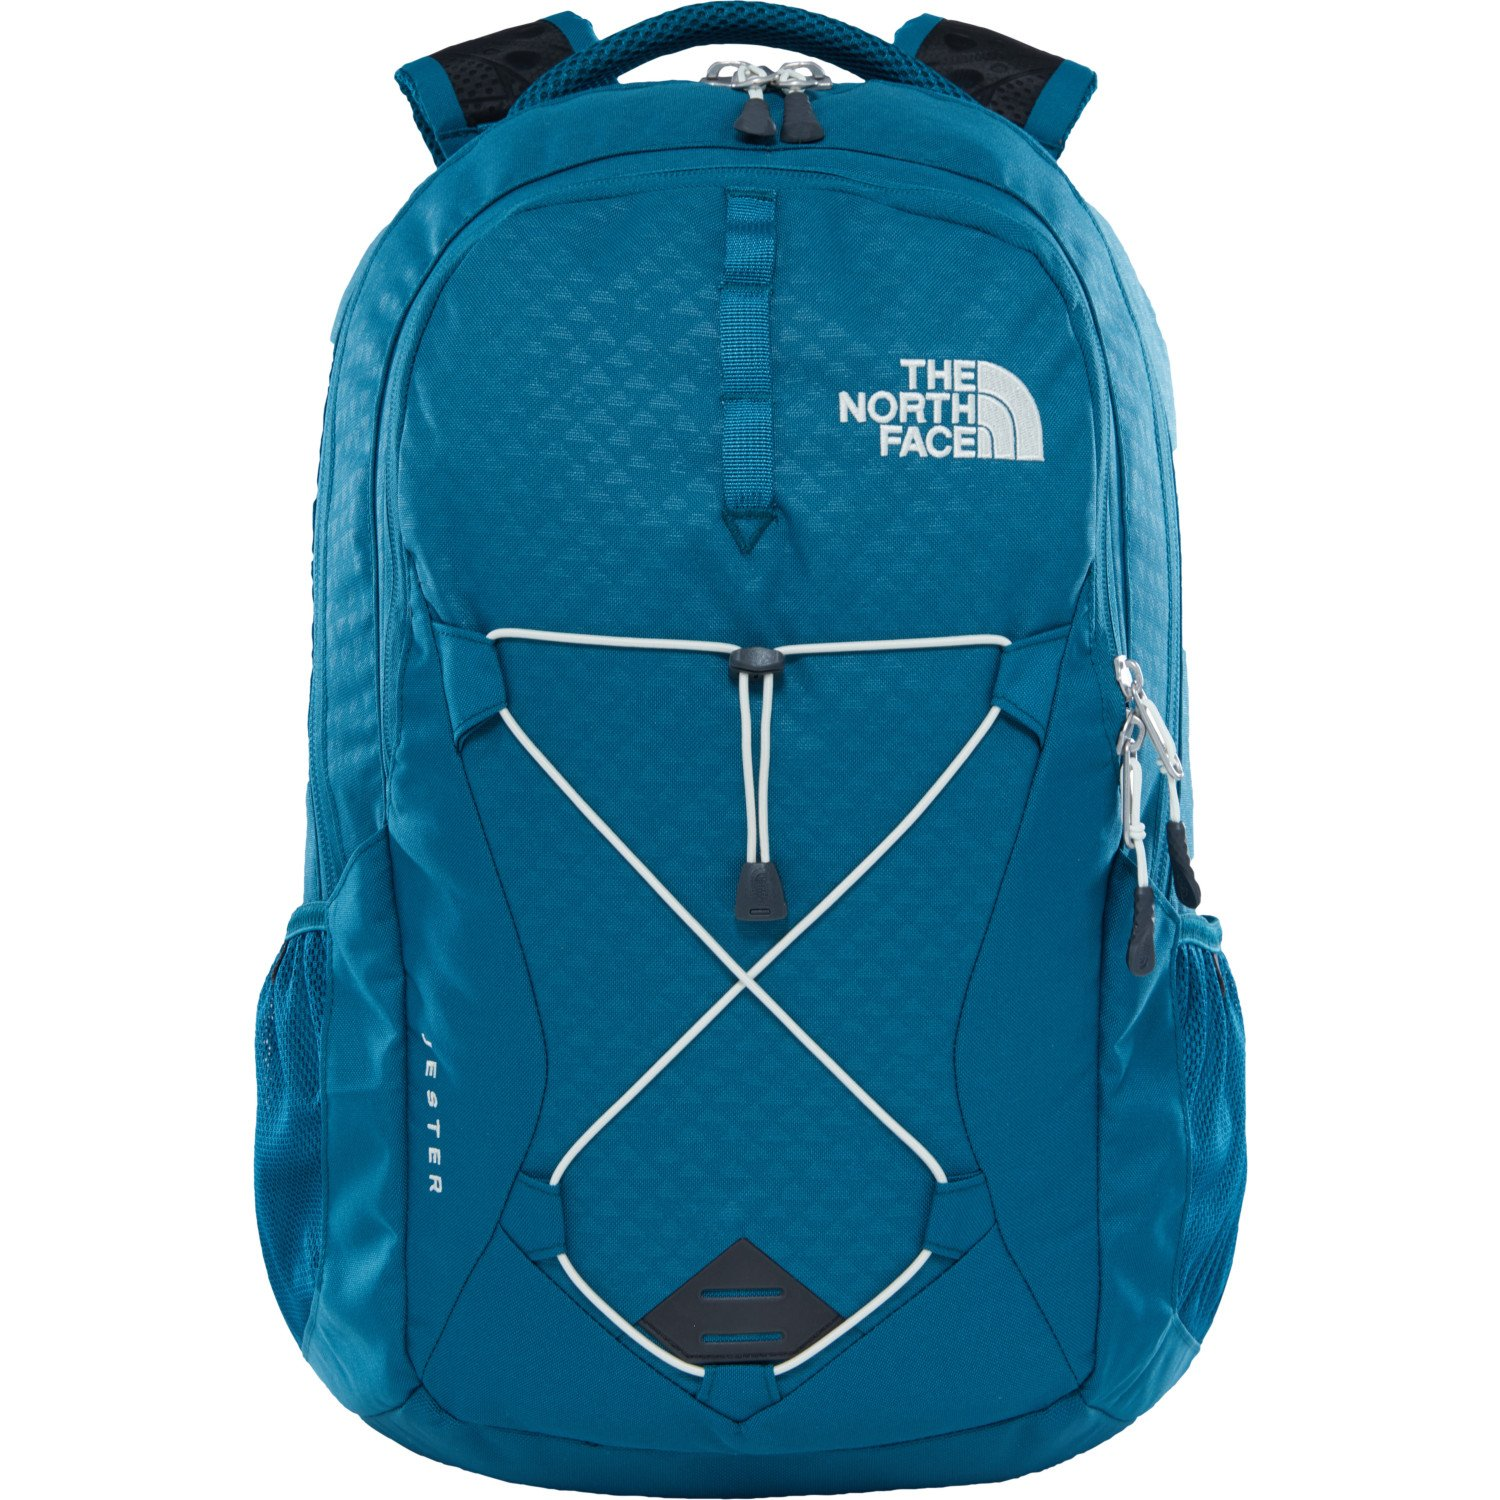 The North Face Women's Jester Laptop Backpack 15''- Sale Colors (Blue Coral by The North Face